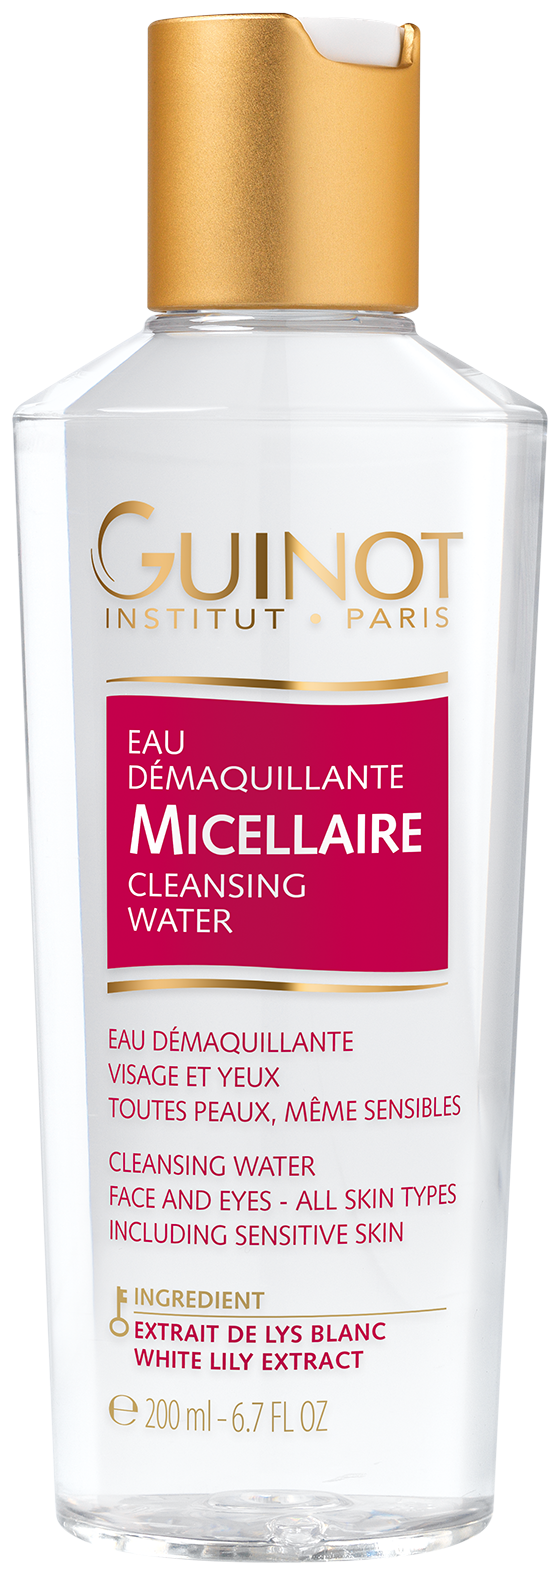 eau demaquillante micellaire make up remover from guinot. Black Bedroom Furniture Sets. Home Design Ideas